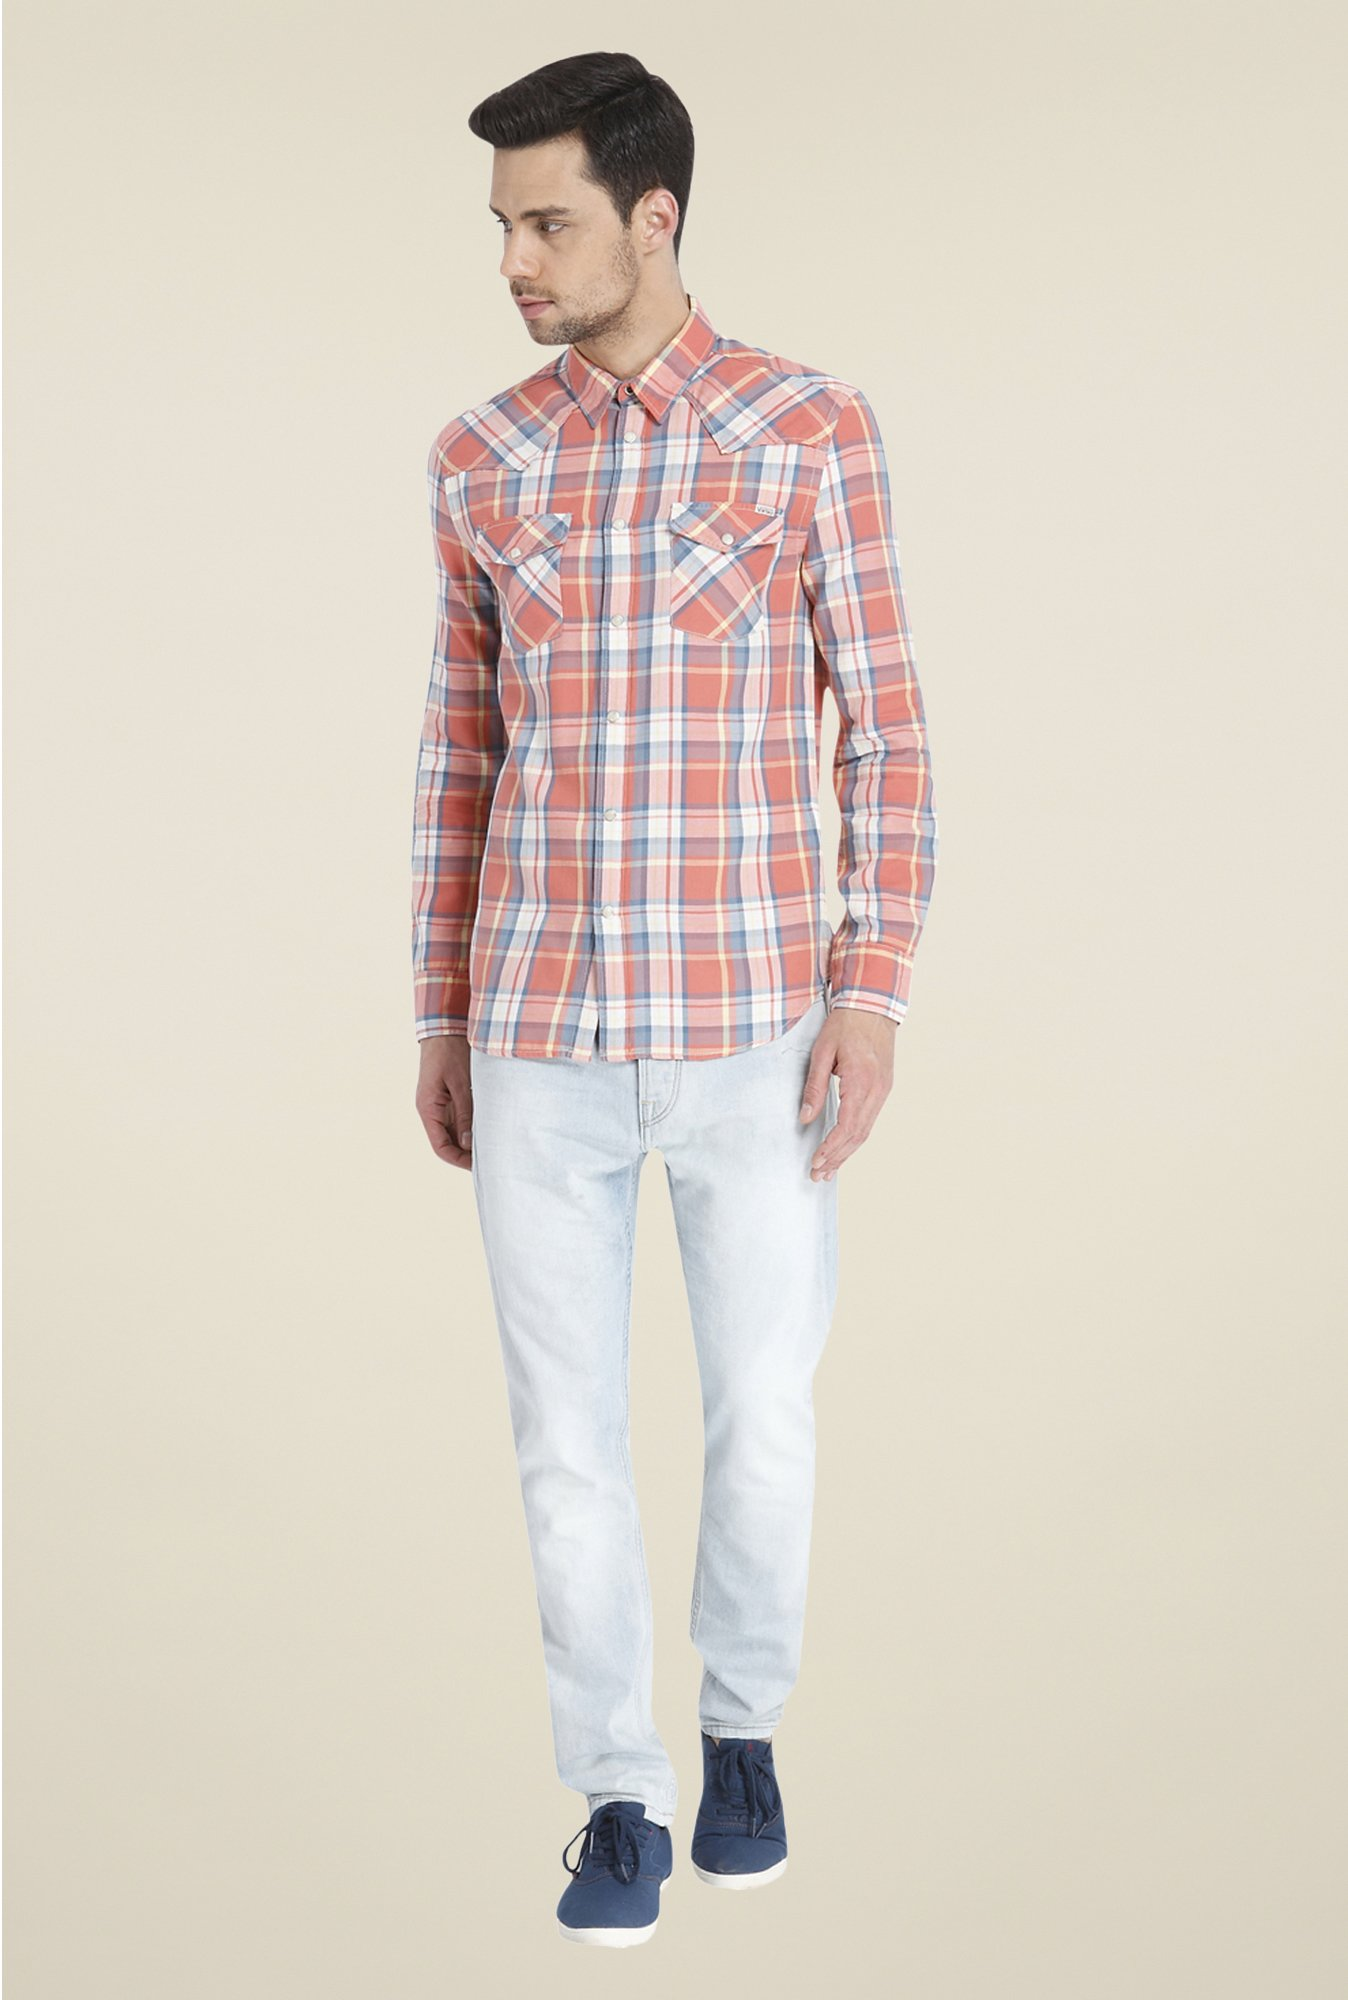 Jack & Jones Orange Checks Shirt